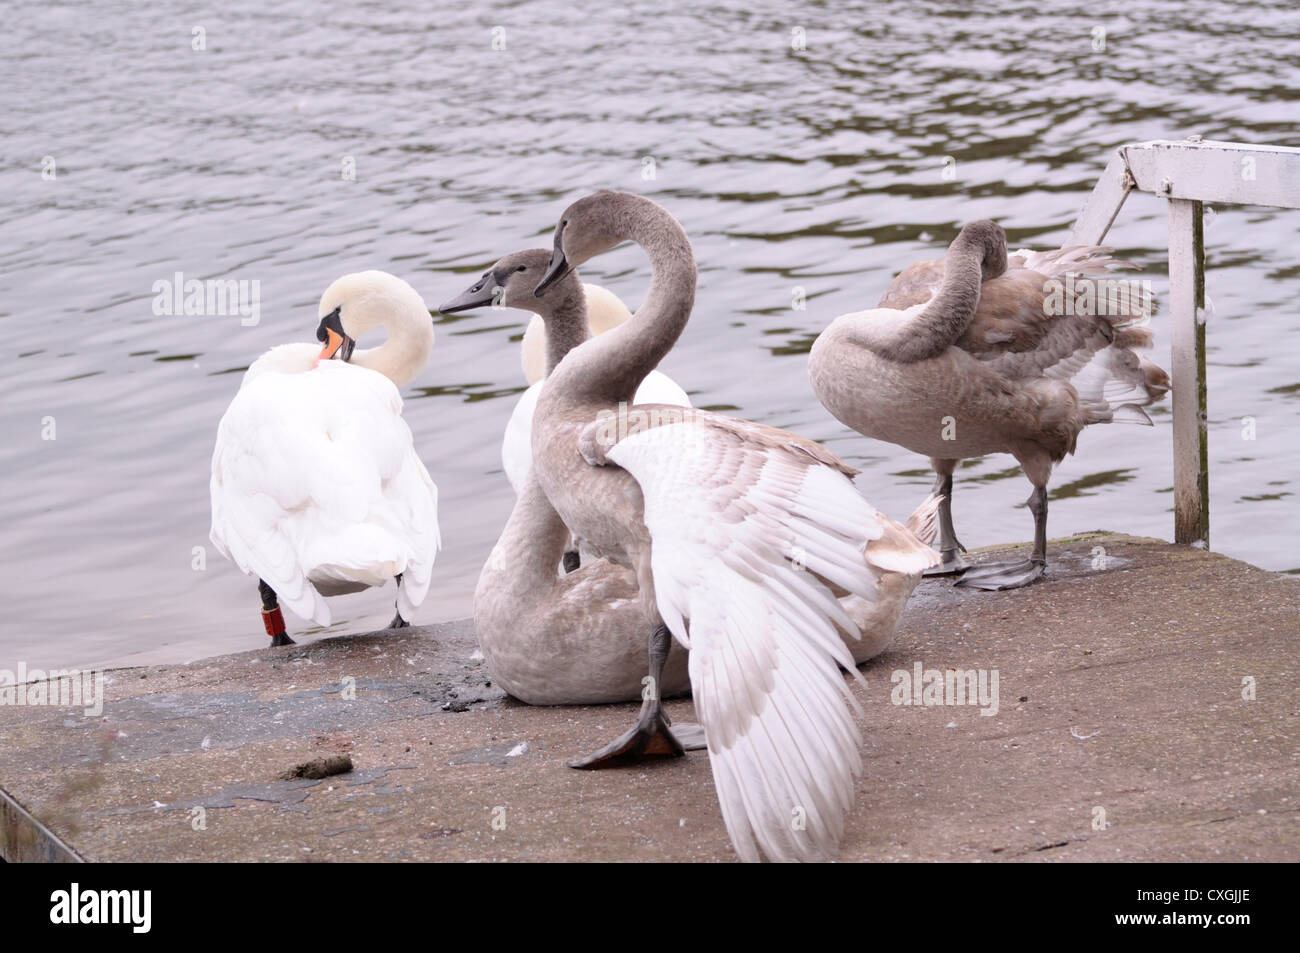 The Swans - Stock Image